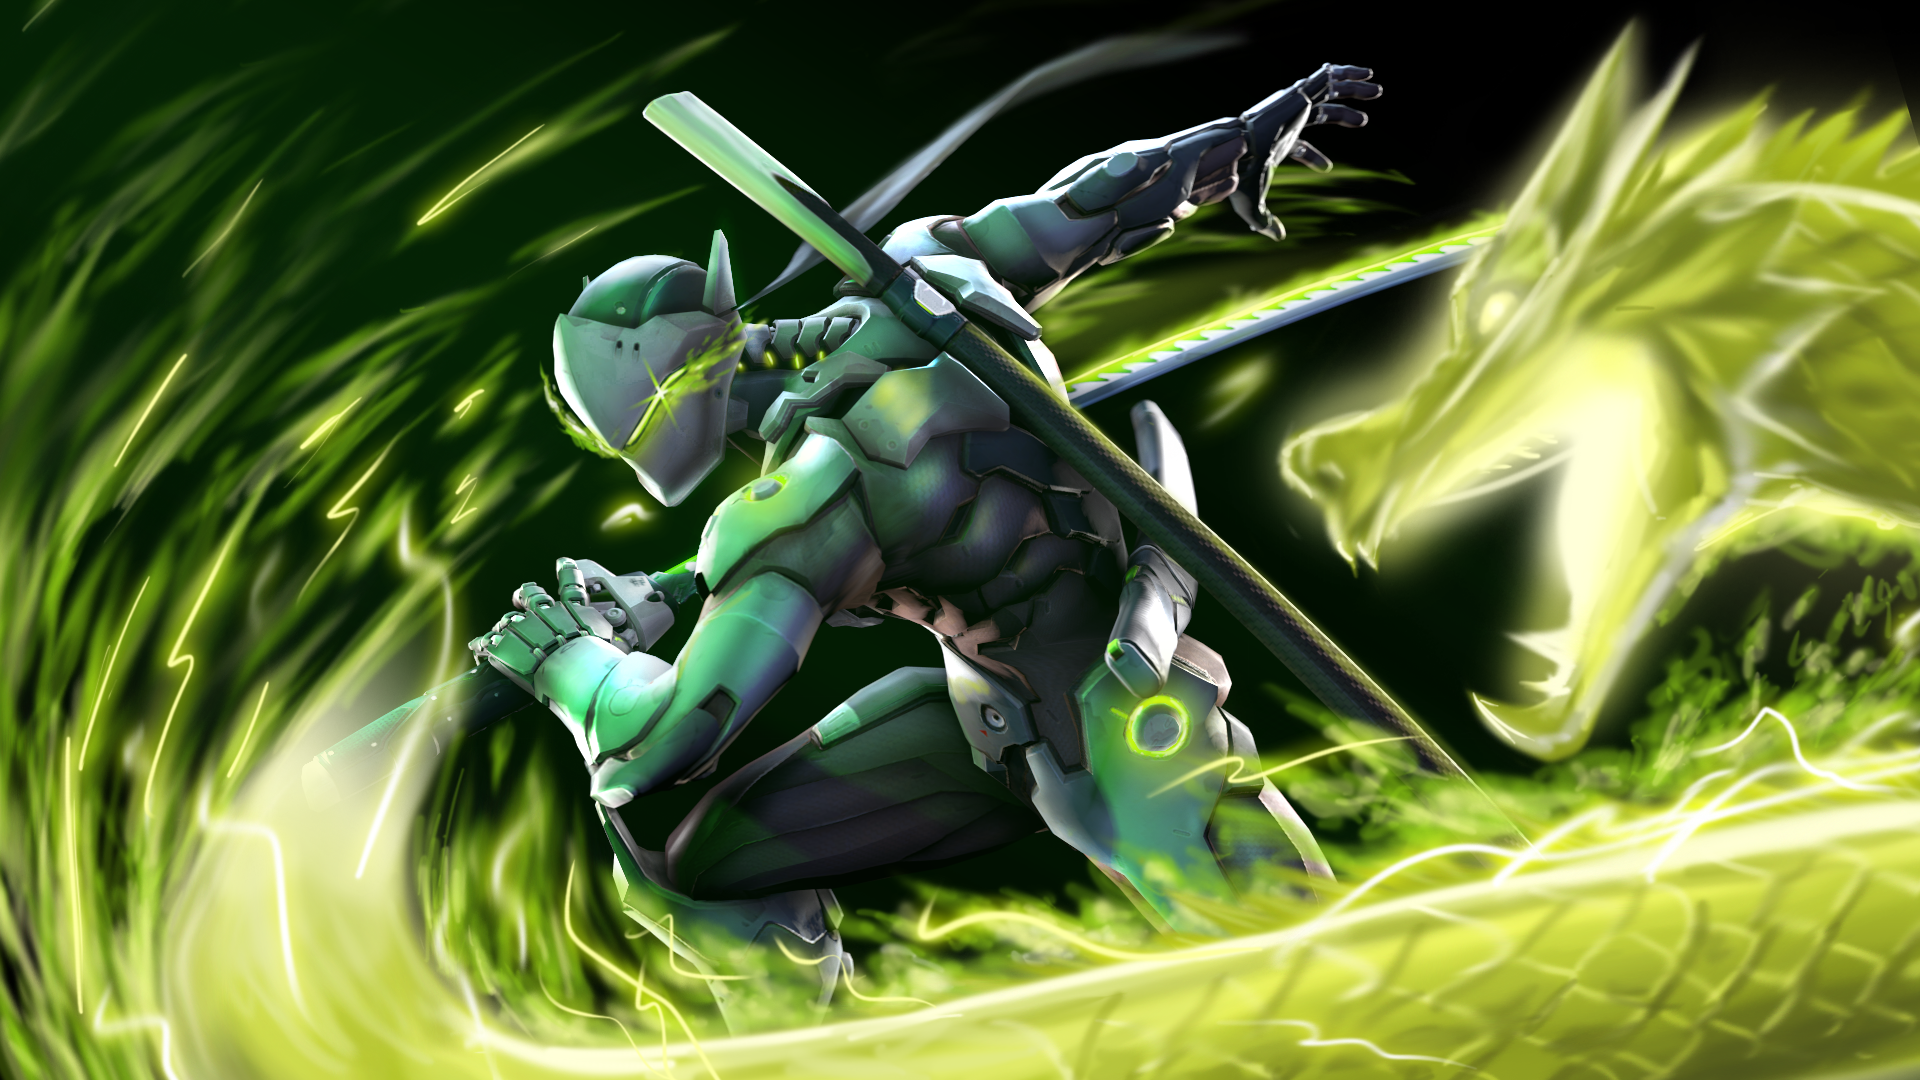 Video Game - Overwatch  Genji (Overwatch) Wallpaper